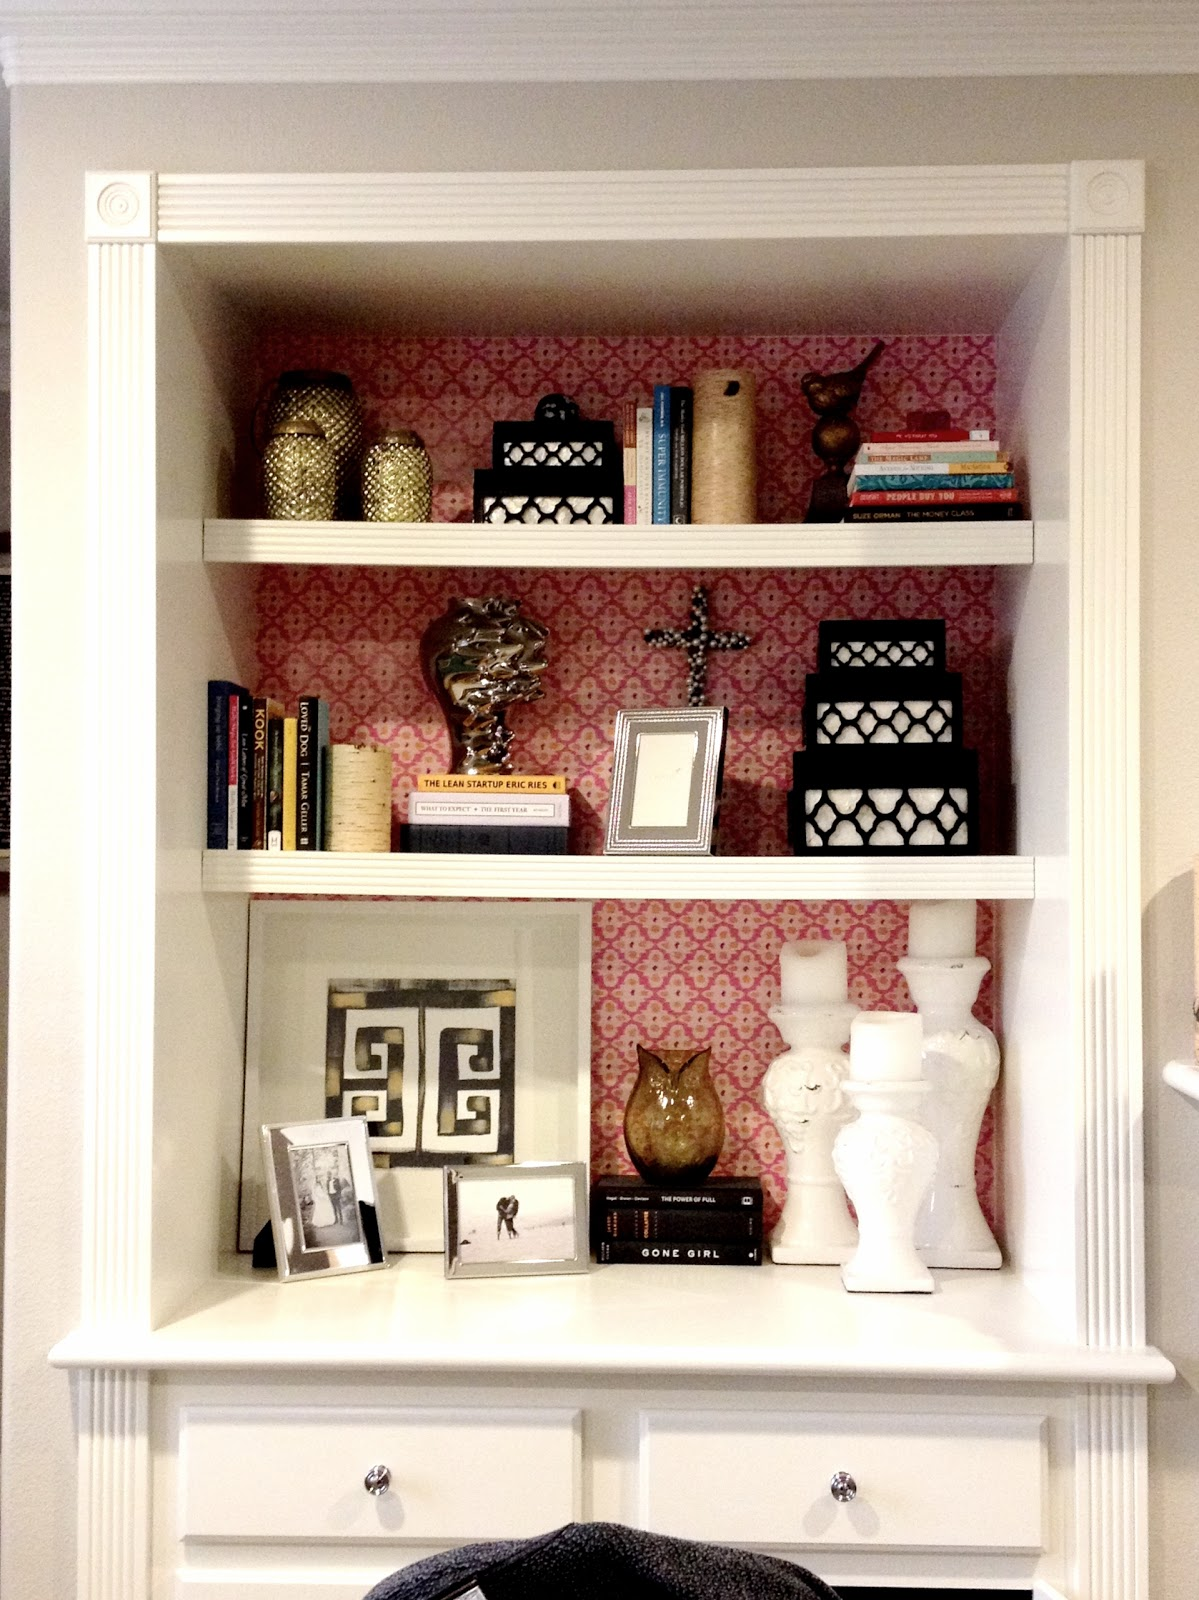 Decorgreat: $3 'Wallpapered' Bookcase